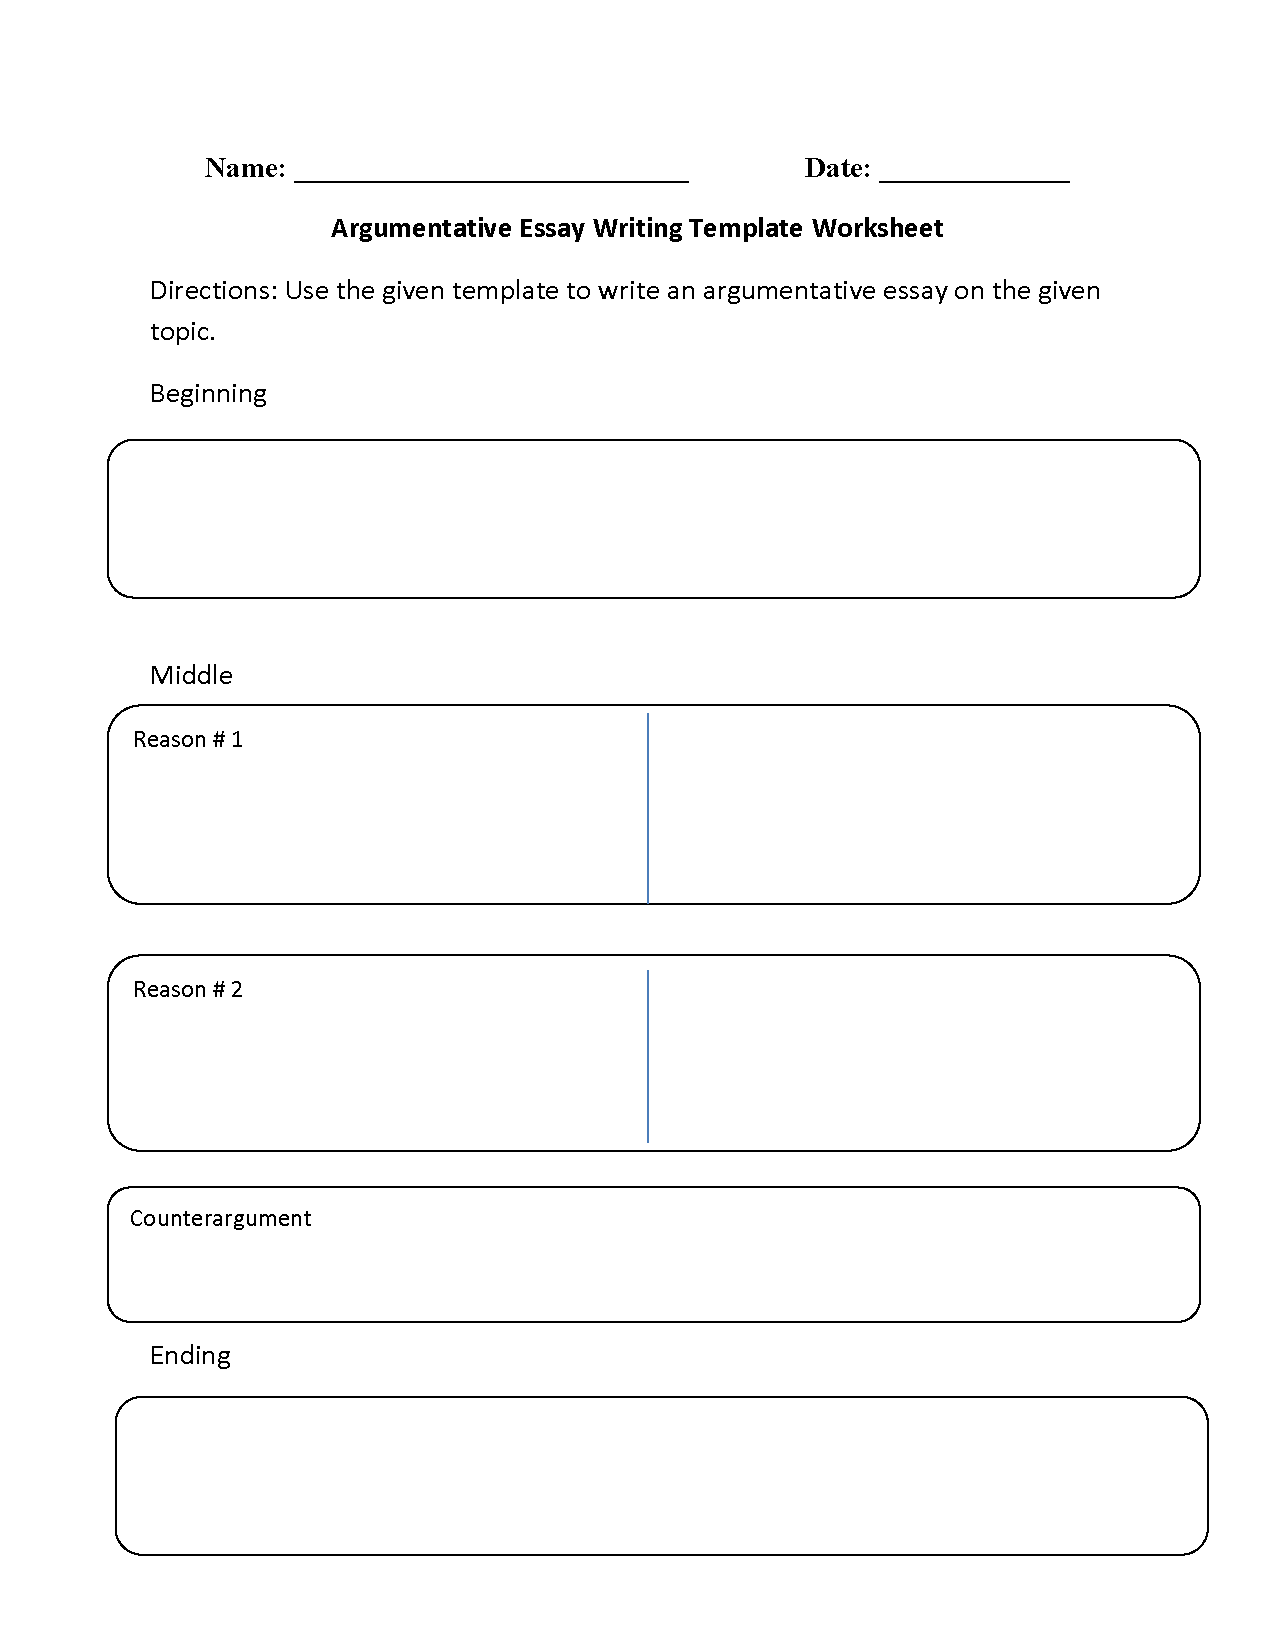 Writing Worksheets | Writing Template Worksheets